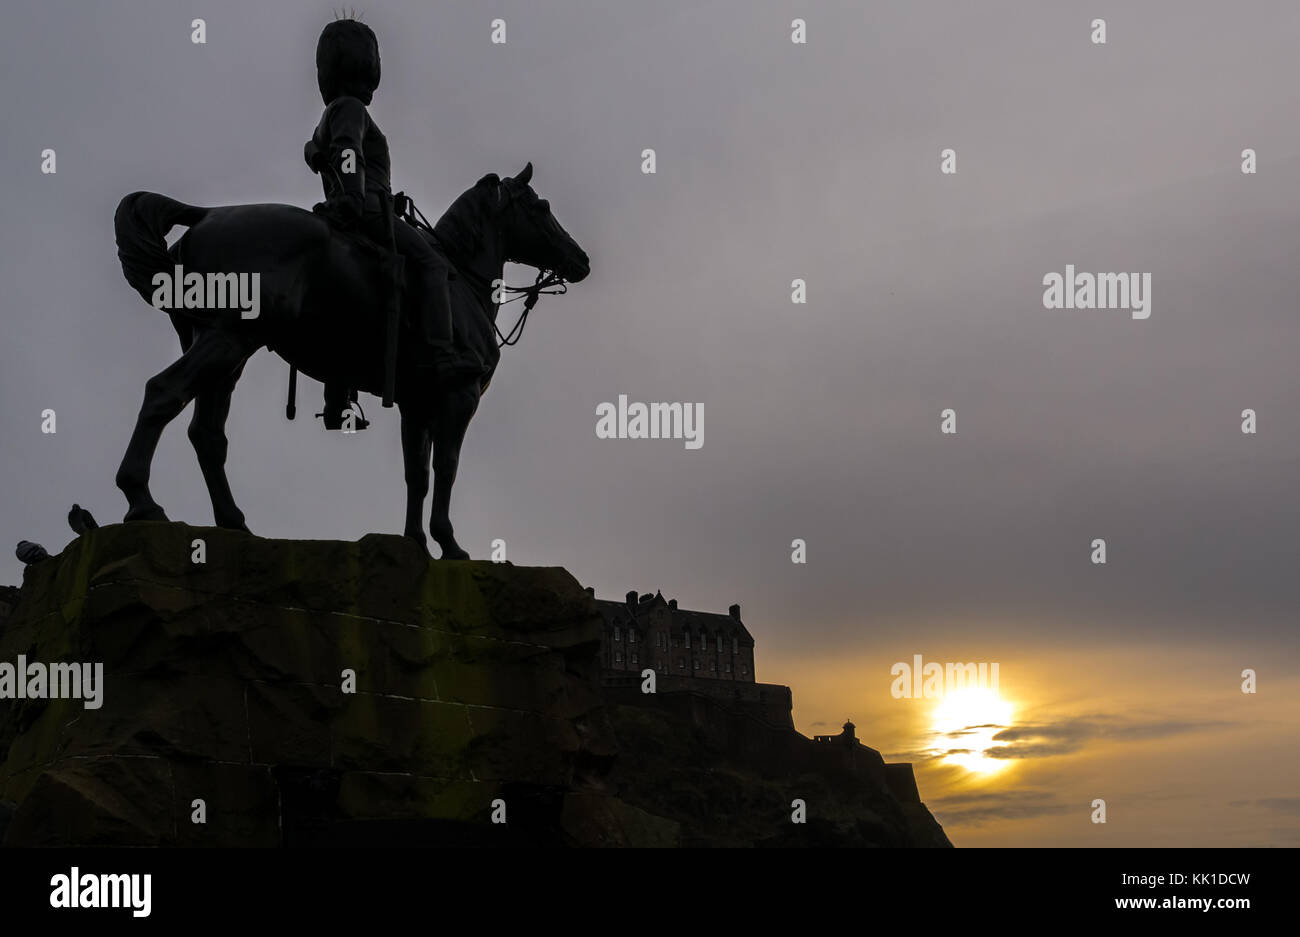 silhouette-royal-scots-greys-monument-so